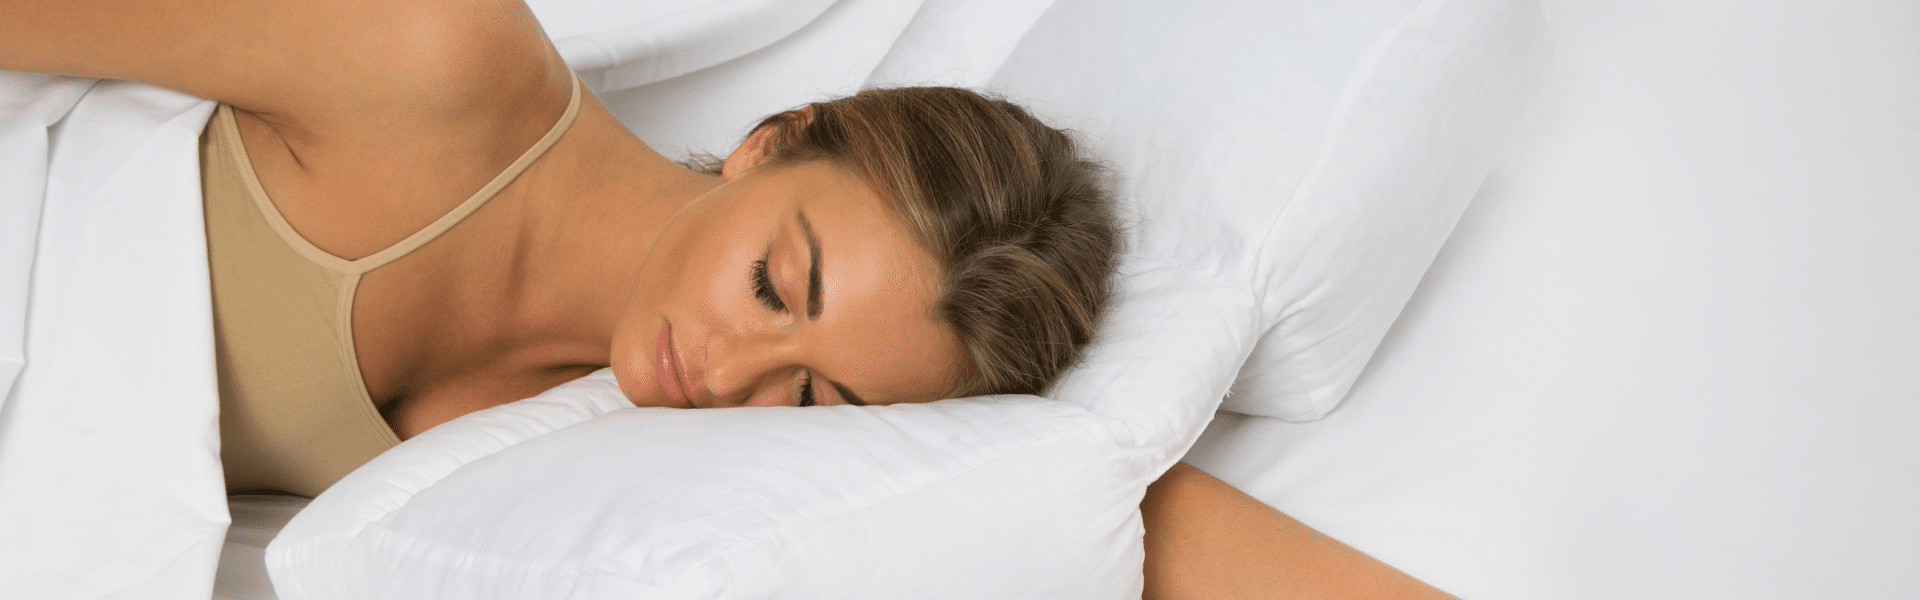 Best Pillows for Neck Pain Reviewed in Detail